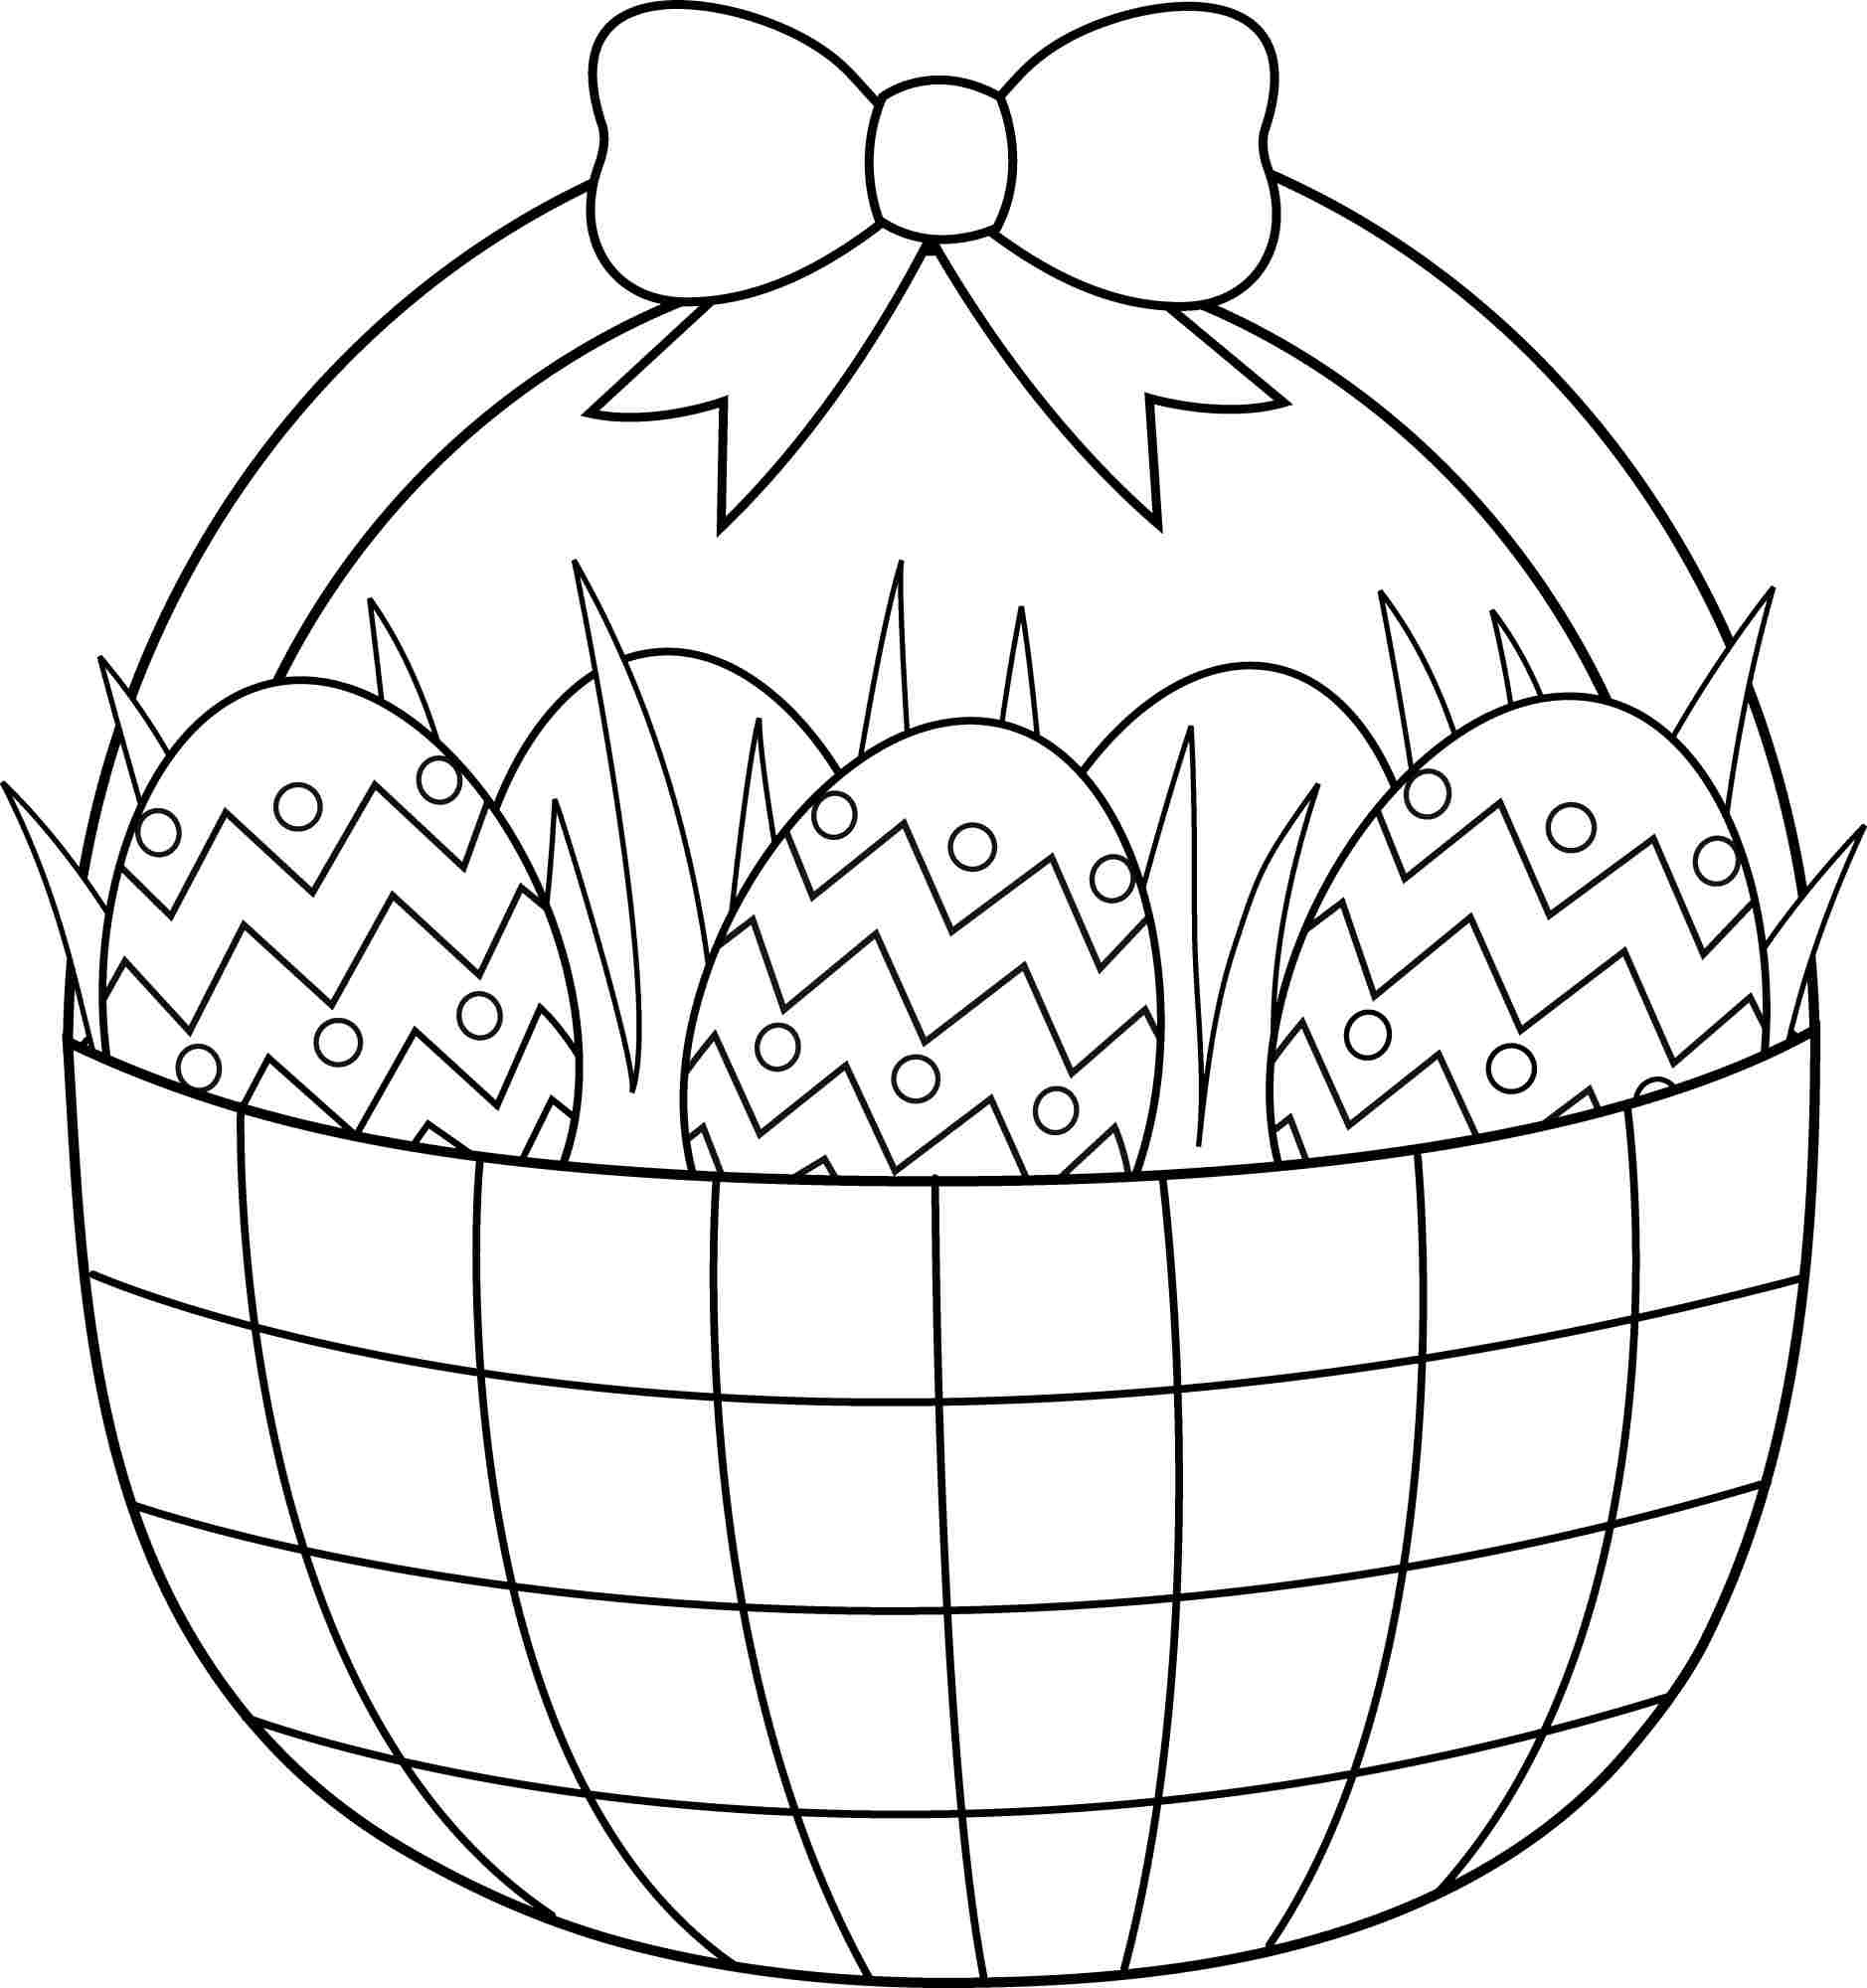 Easter Printable Coloring Pages Boys - 9.17.kaartenstemp.nl • - Coloring Pages Free Printable Easter